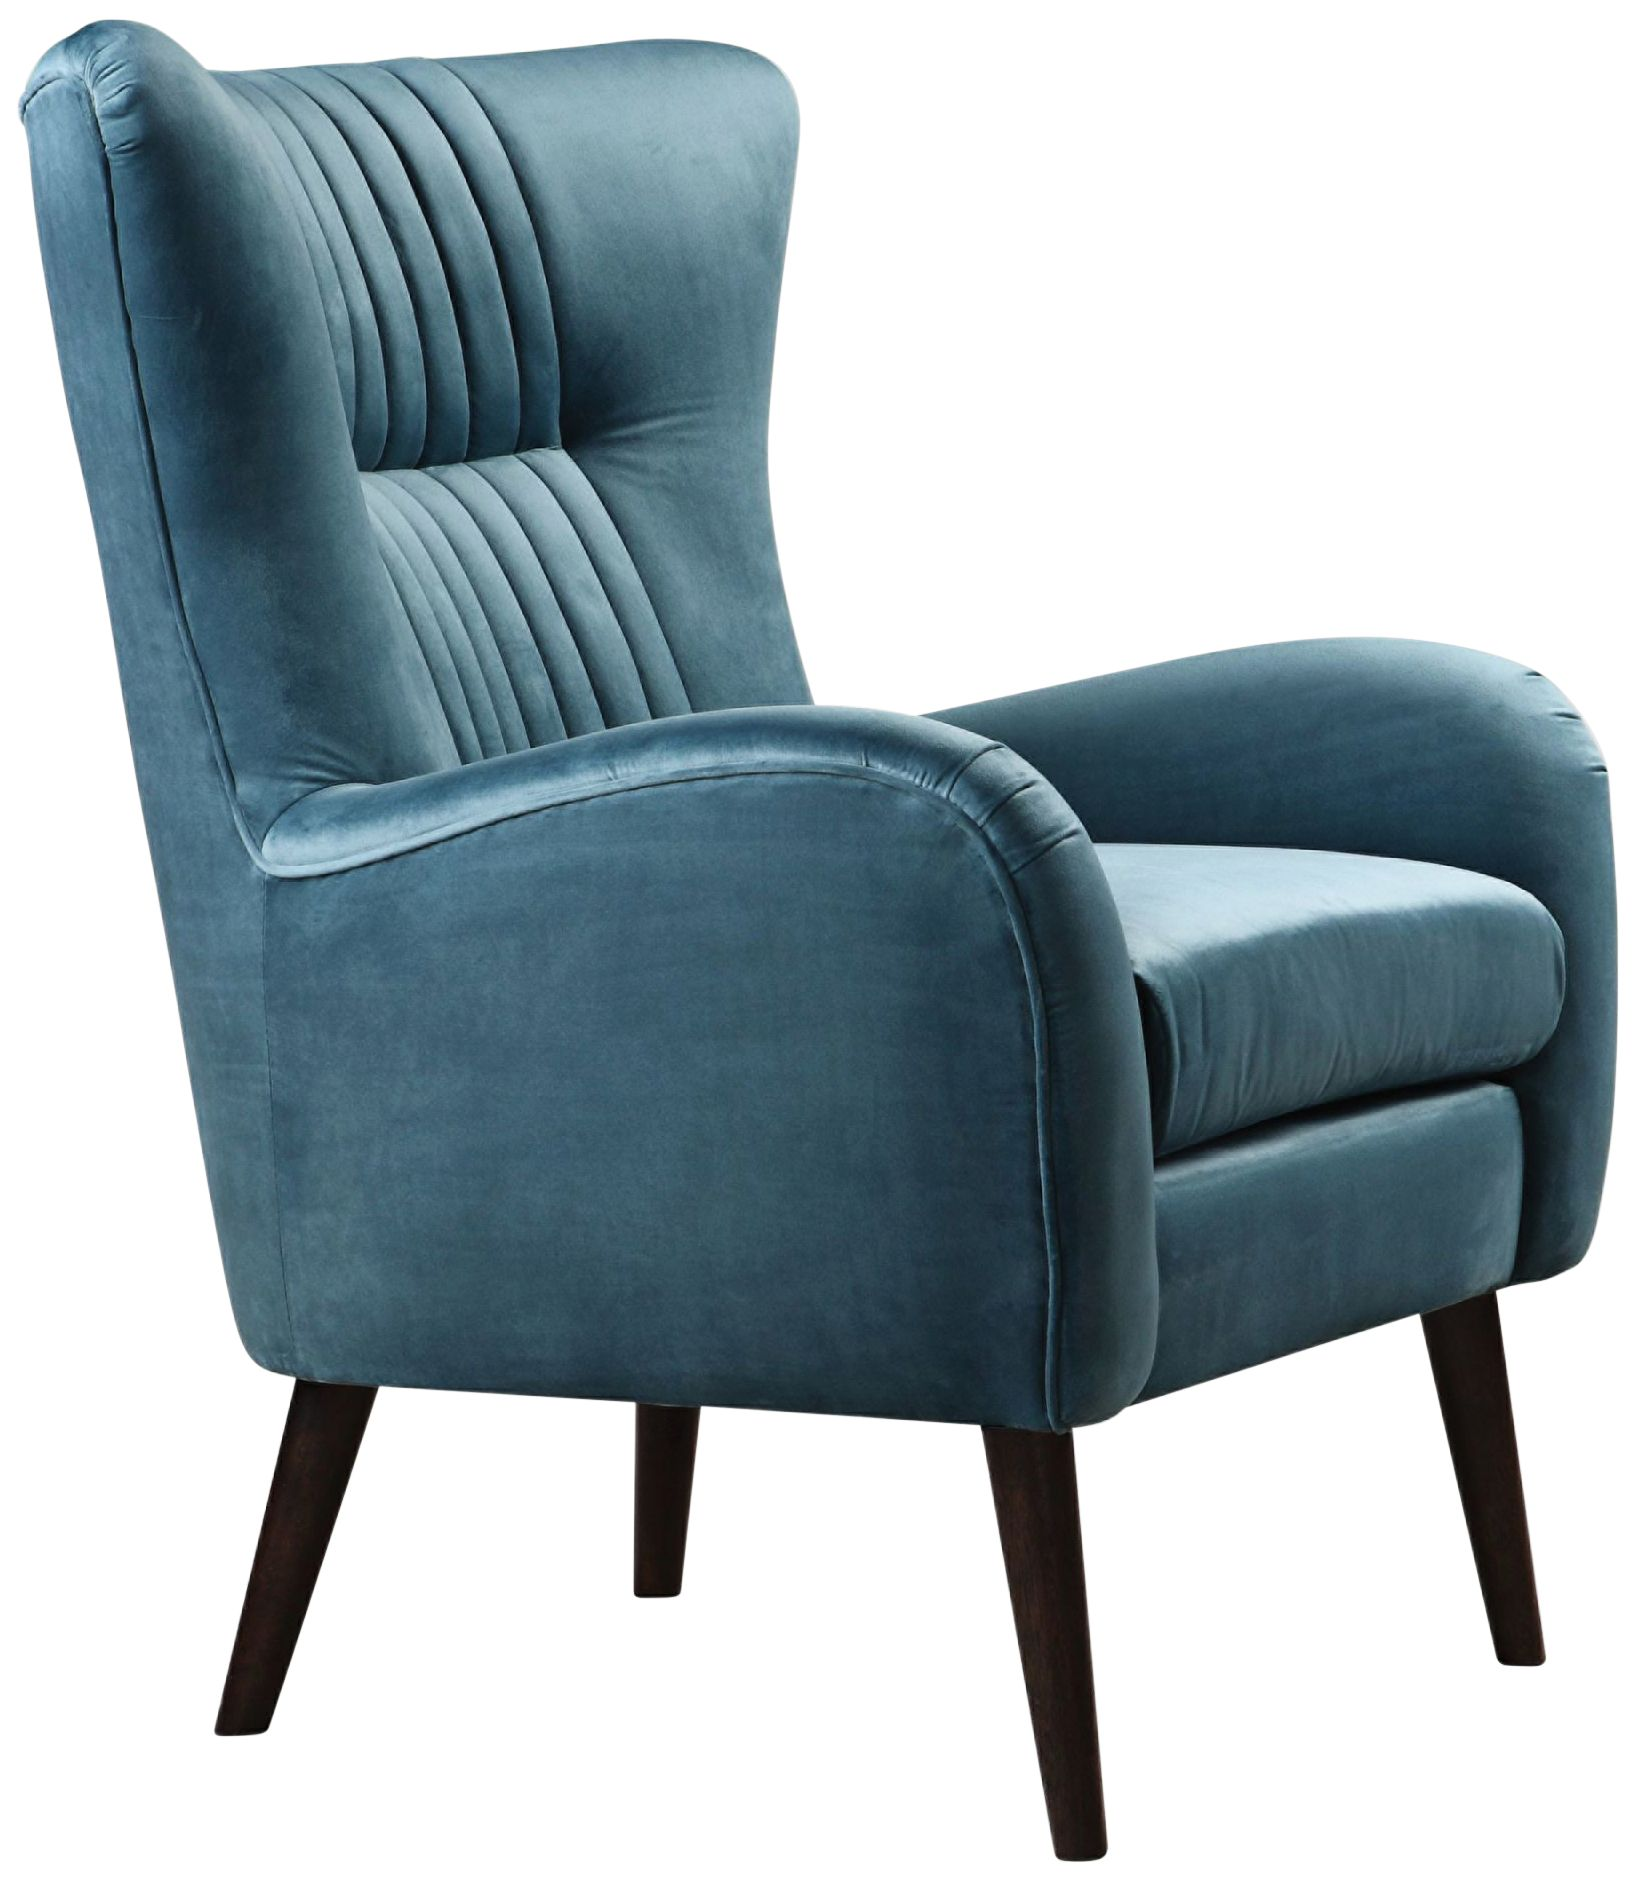 teal colored chairs hand painted wooden uttermost dax blue velvet tufted accent chair 31c85 lamps plus